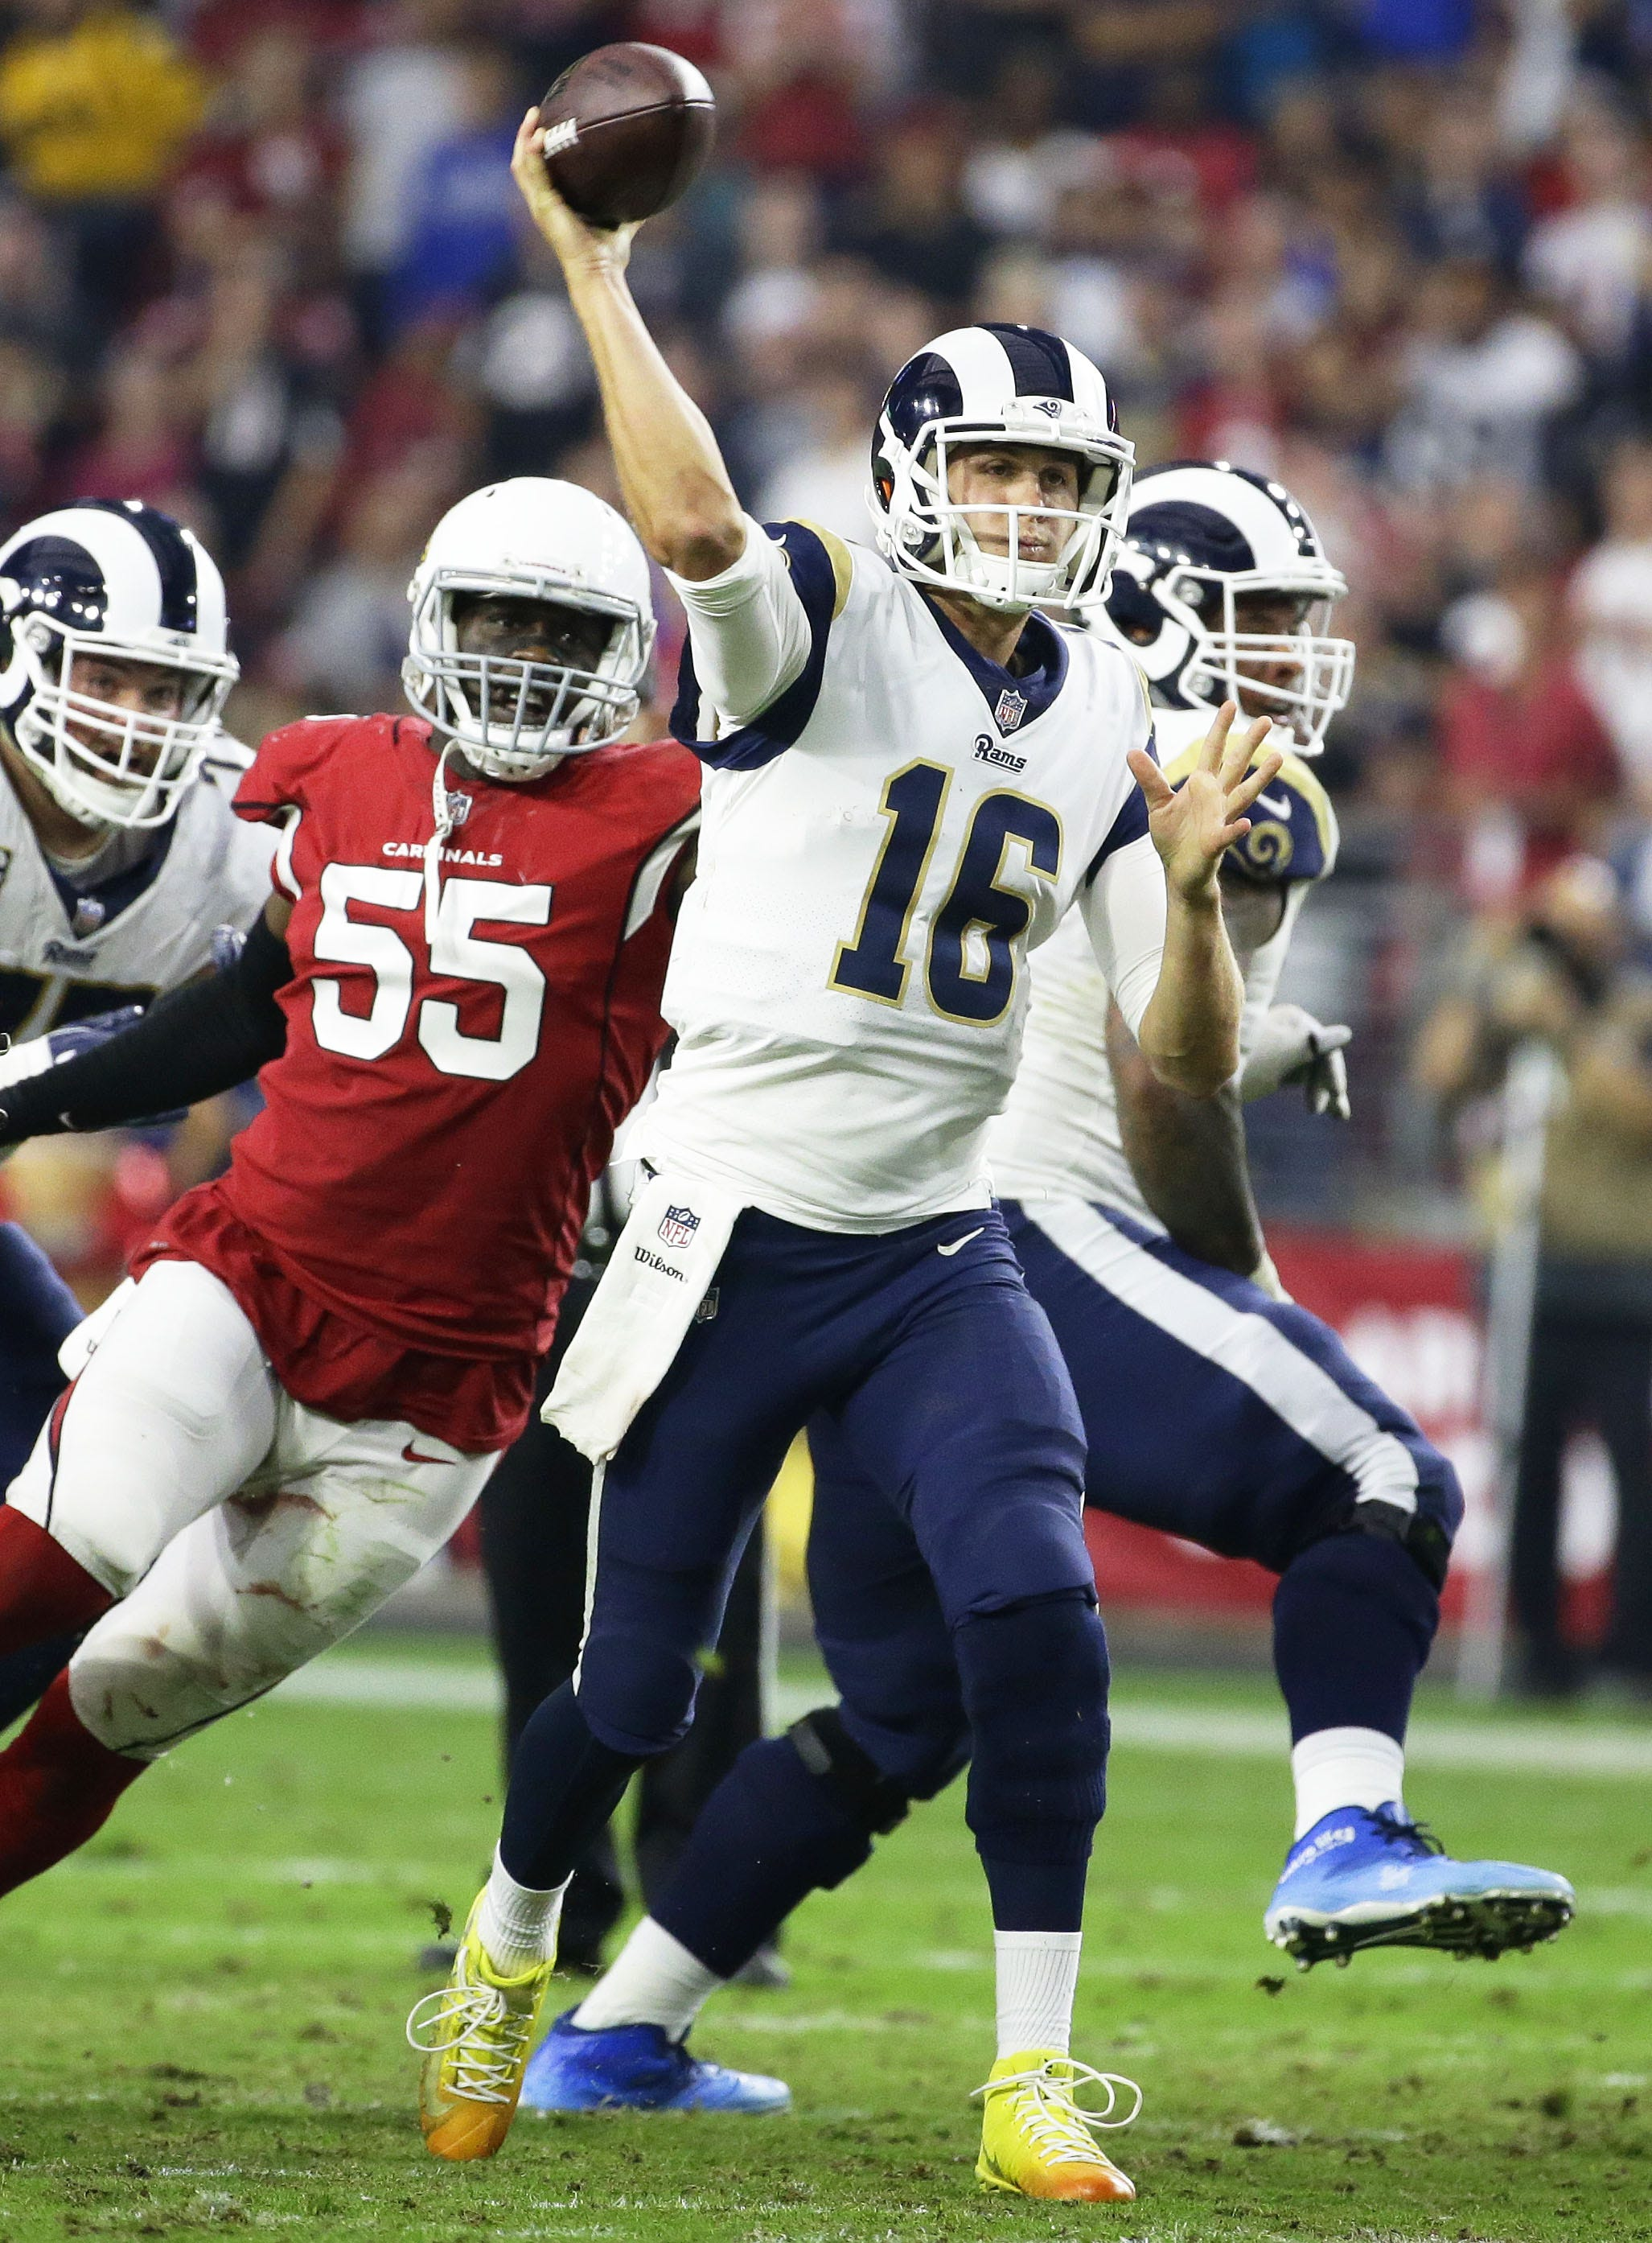 Los Angeles Rams quarterback Jared Goff throws a pass